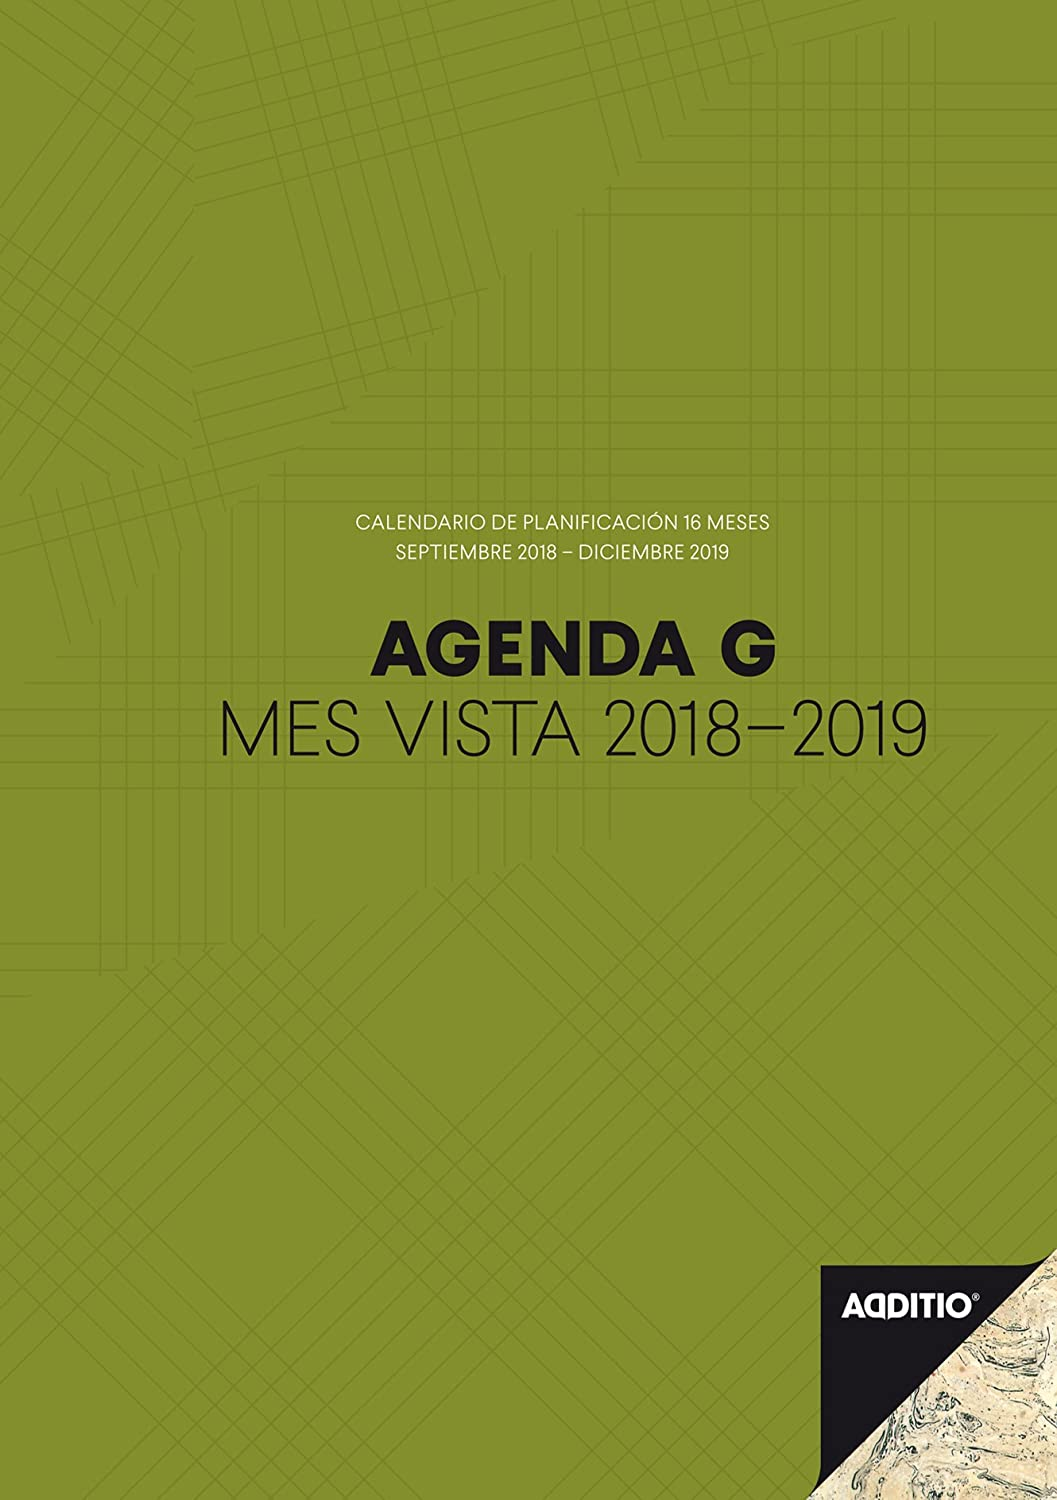 Additio P182 - Agenda G 2018-19, mes vista